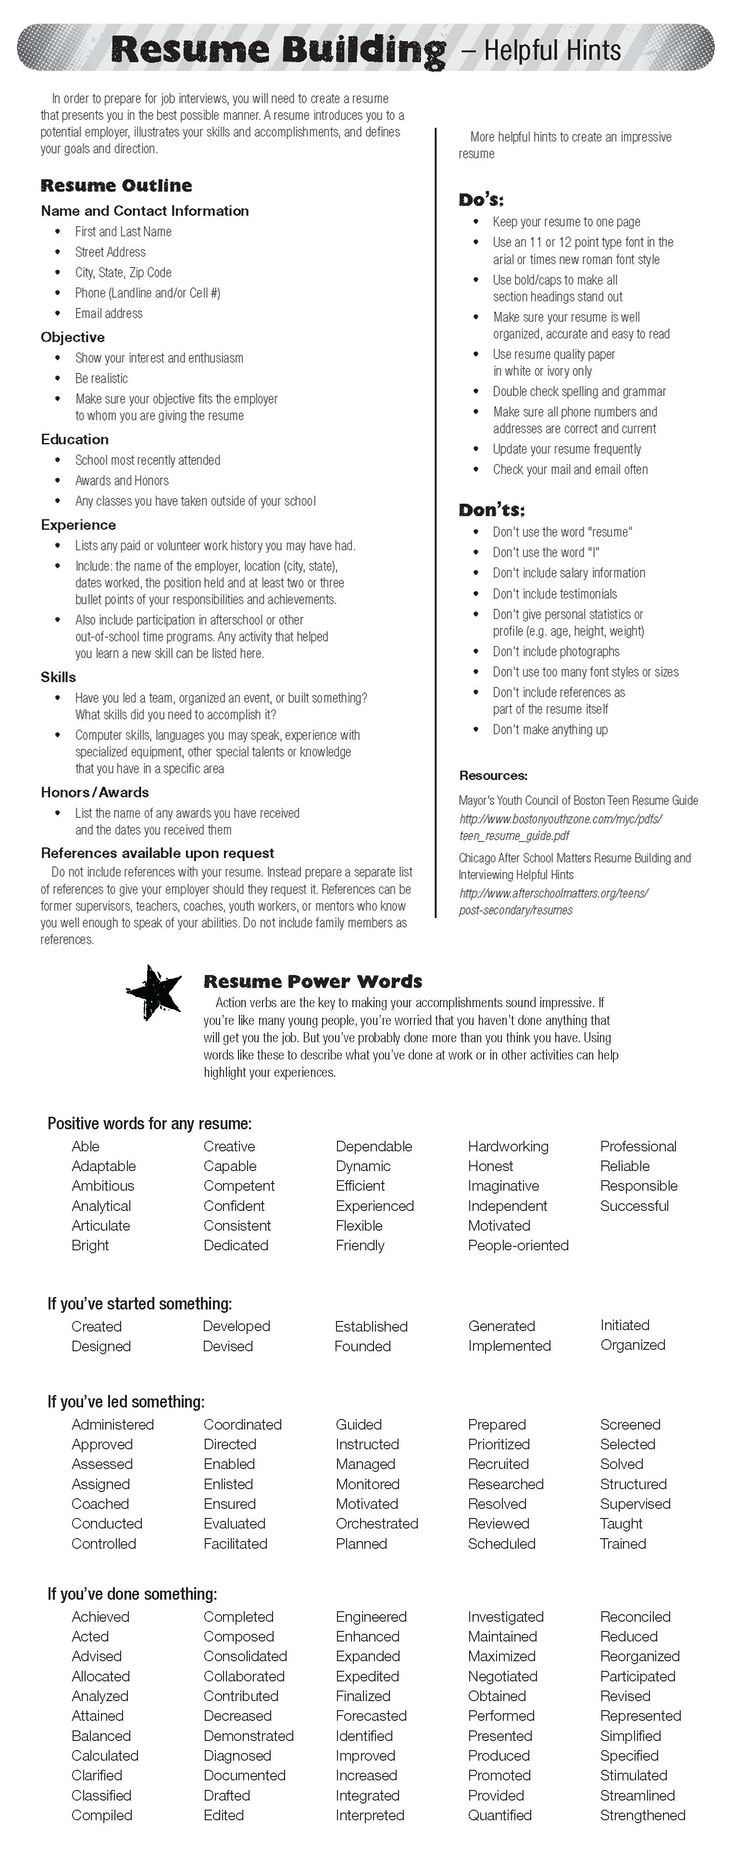 Opposenewapstandardsus  Outstanding  Ideas About Resume On Pinterest  Cv Format Resume Cv And  With Glamorous  Ideas About Resume On Pinterest  Cv Format Resume Cv And Resume Templates With Appealing Resume For Internship Position Also Best Free Resume Template In Addition Putting Gpa On Resume And Good College Resume As Well As Sports Management Resume Additionally Mental Health Technician Resume From Pinterestcom With Opposenewapstandardsus  Glamorous  Ideas About Resume On Pinterest  Cv Format Resume Cv And  With Appealing  Ideas About Resume On Pinterest  Cv Format Resume Cv And Resume Templates And Outstanding Resume For Internship Position Also Best Free Resume Template In Addition Putting Gpa On Resume From Pinterestcom